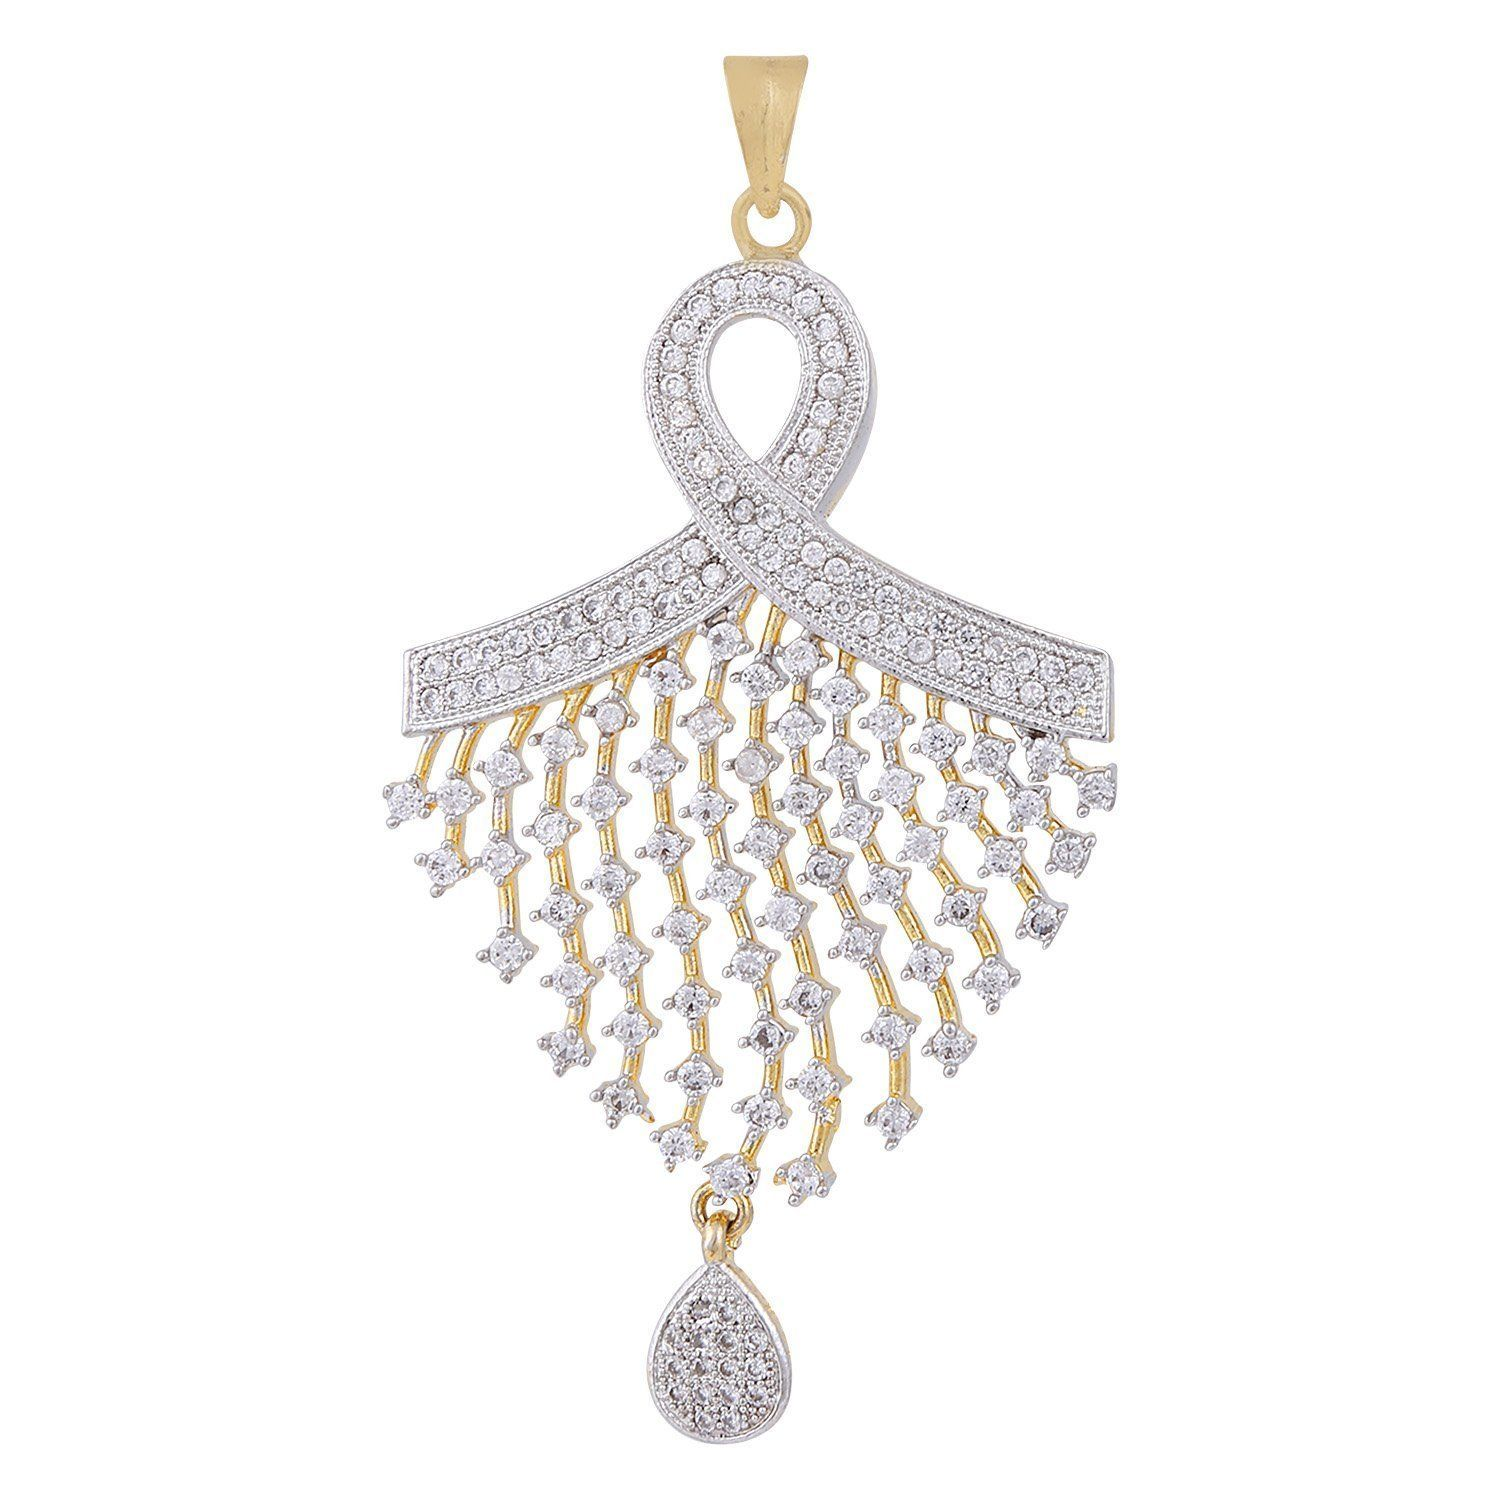 Ananth jewels peacock shaped zircon fashion jewelry set pendant